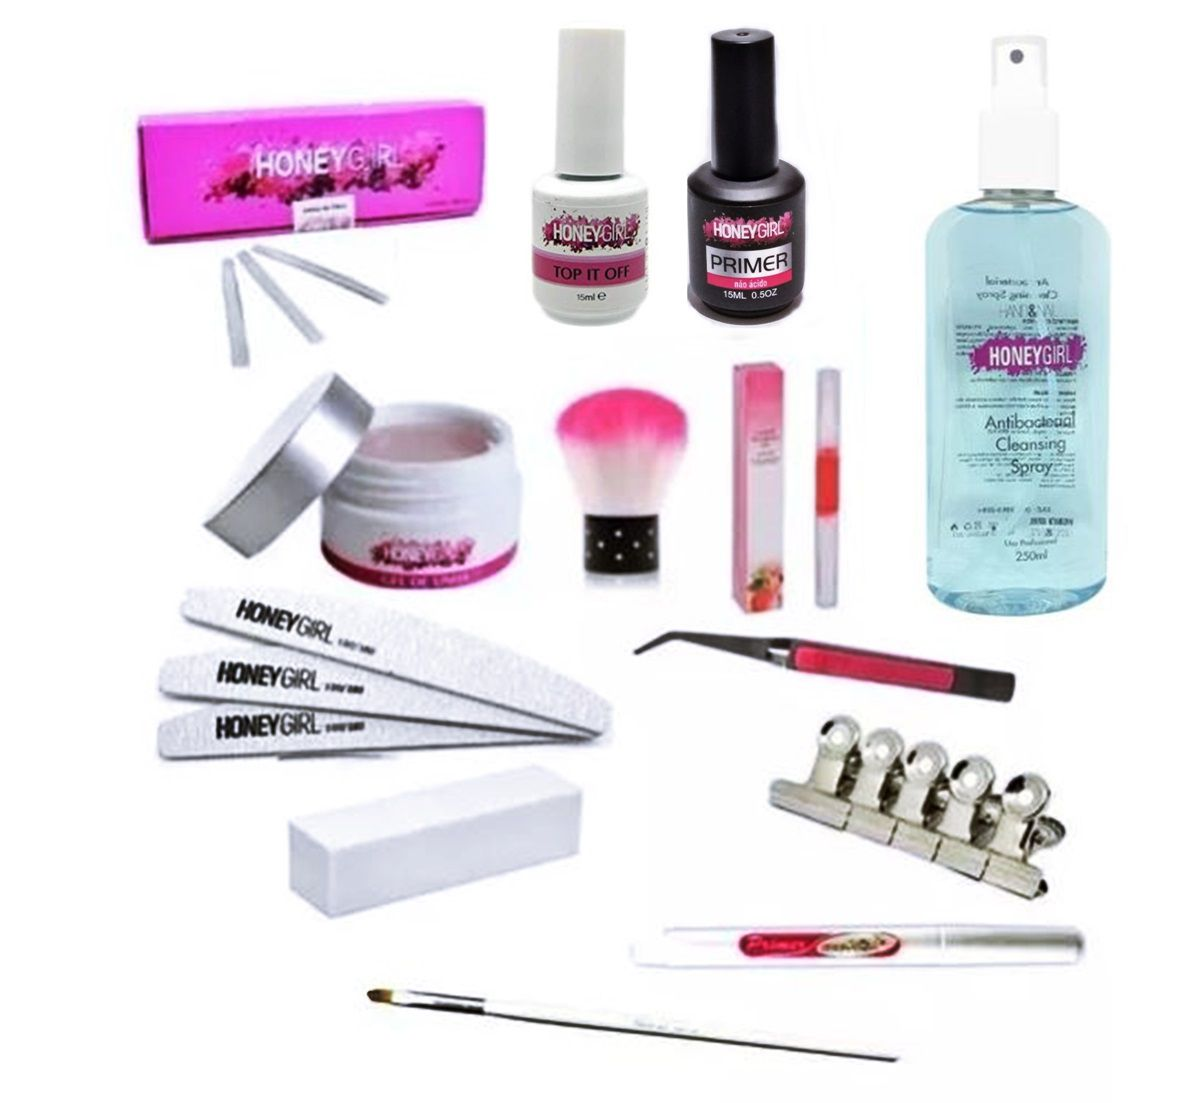 Kit Gel Pink Light Top Coat Primer Unha Fibra Prep 250ml Caneta Primer